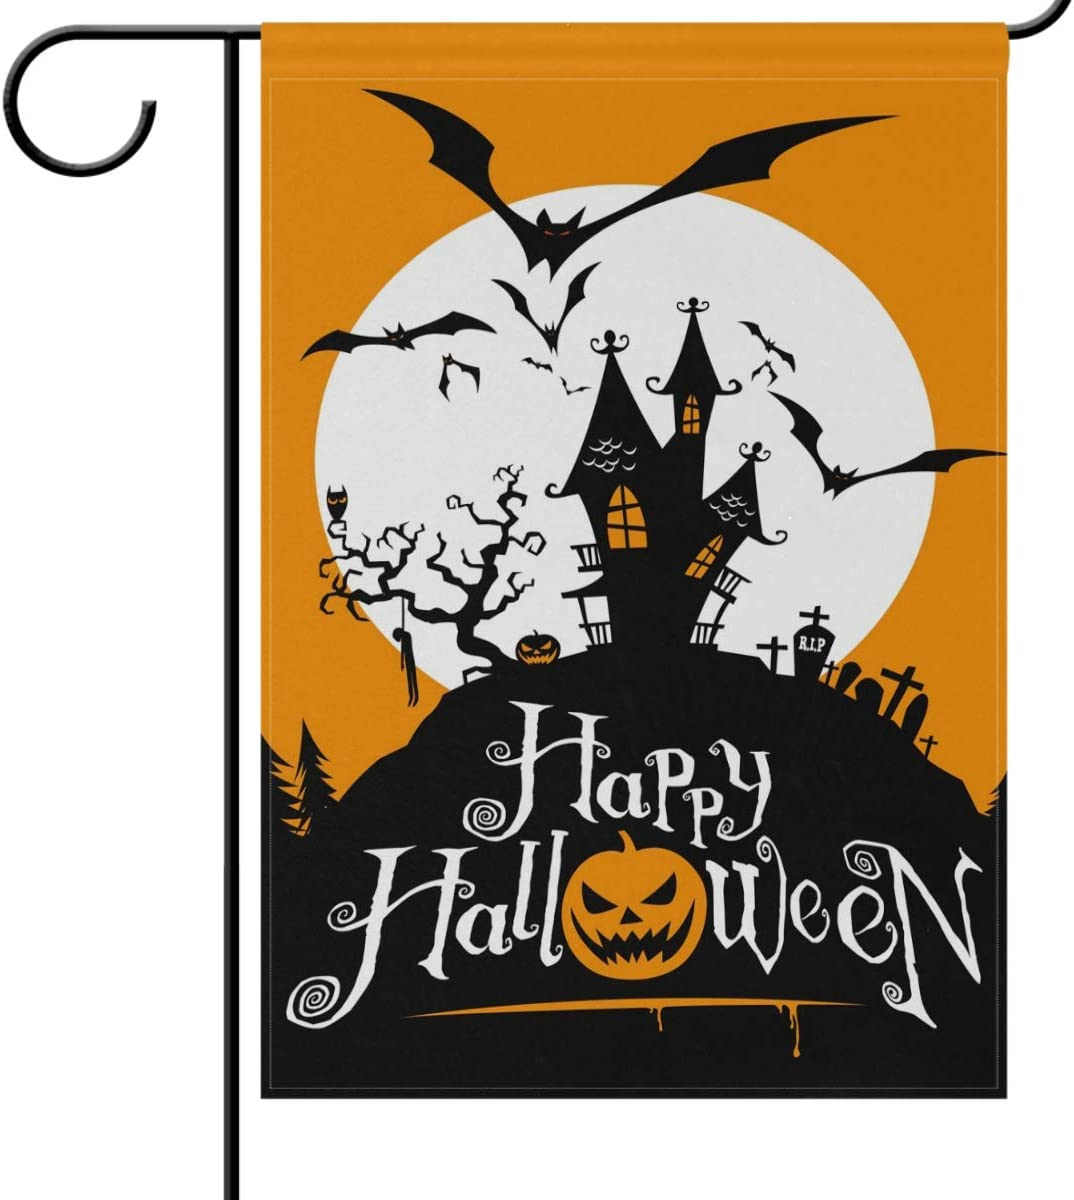 Amazon Com Wamika Halloween Garden Flags 12 X 18 Double Sided Spooky Castle Grave Pumpkin Bat Funny Scary Welcome Autumn Fall Winter Holiday Outdoor Yard House Flags Banner For Party Home Decor